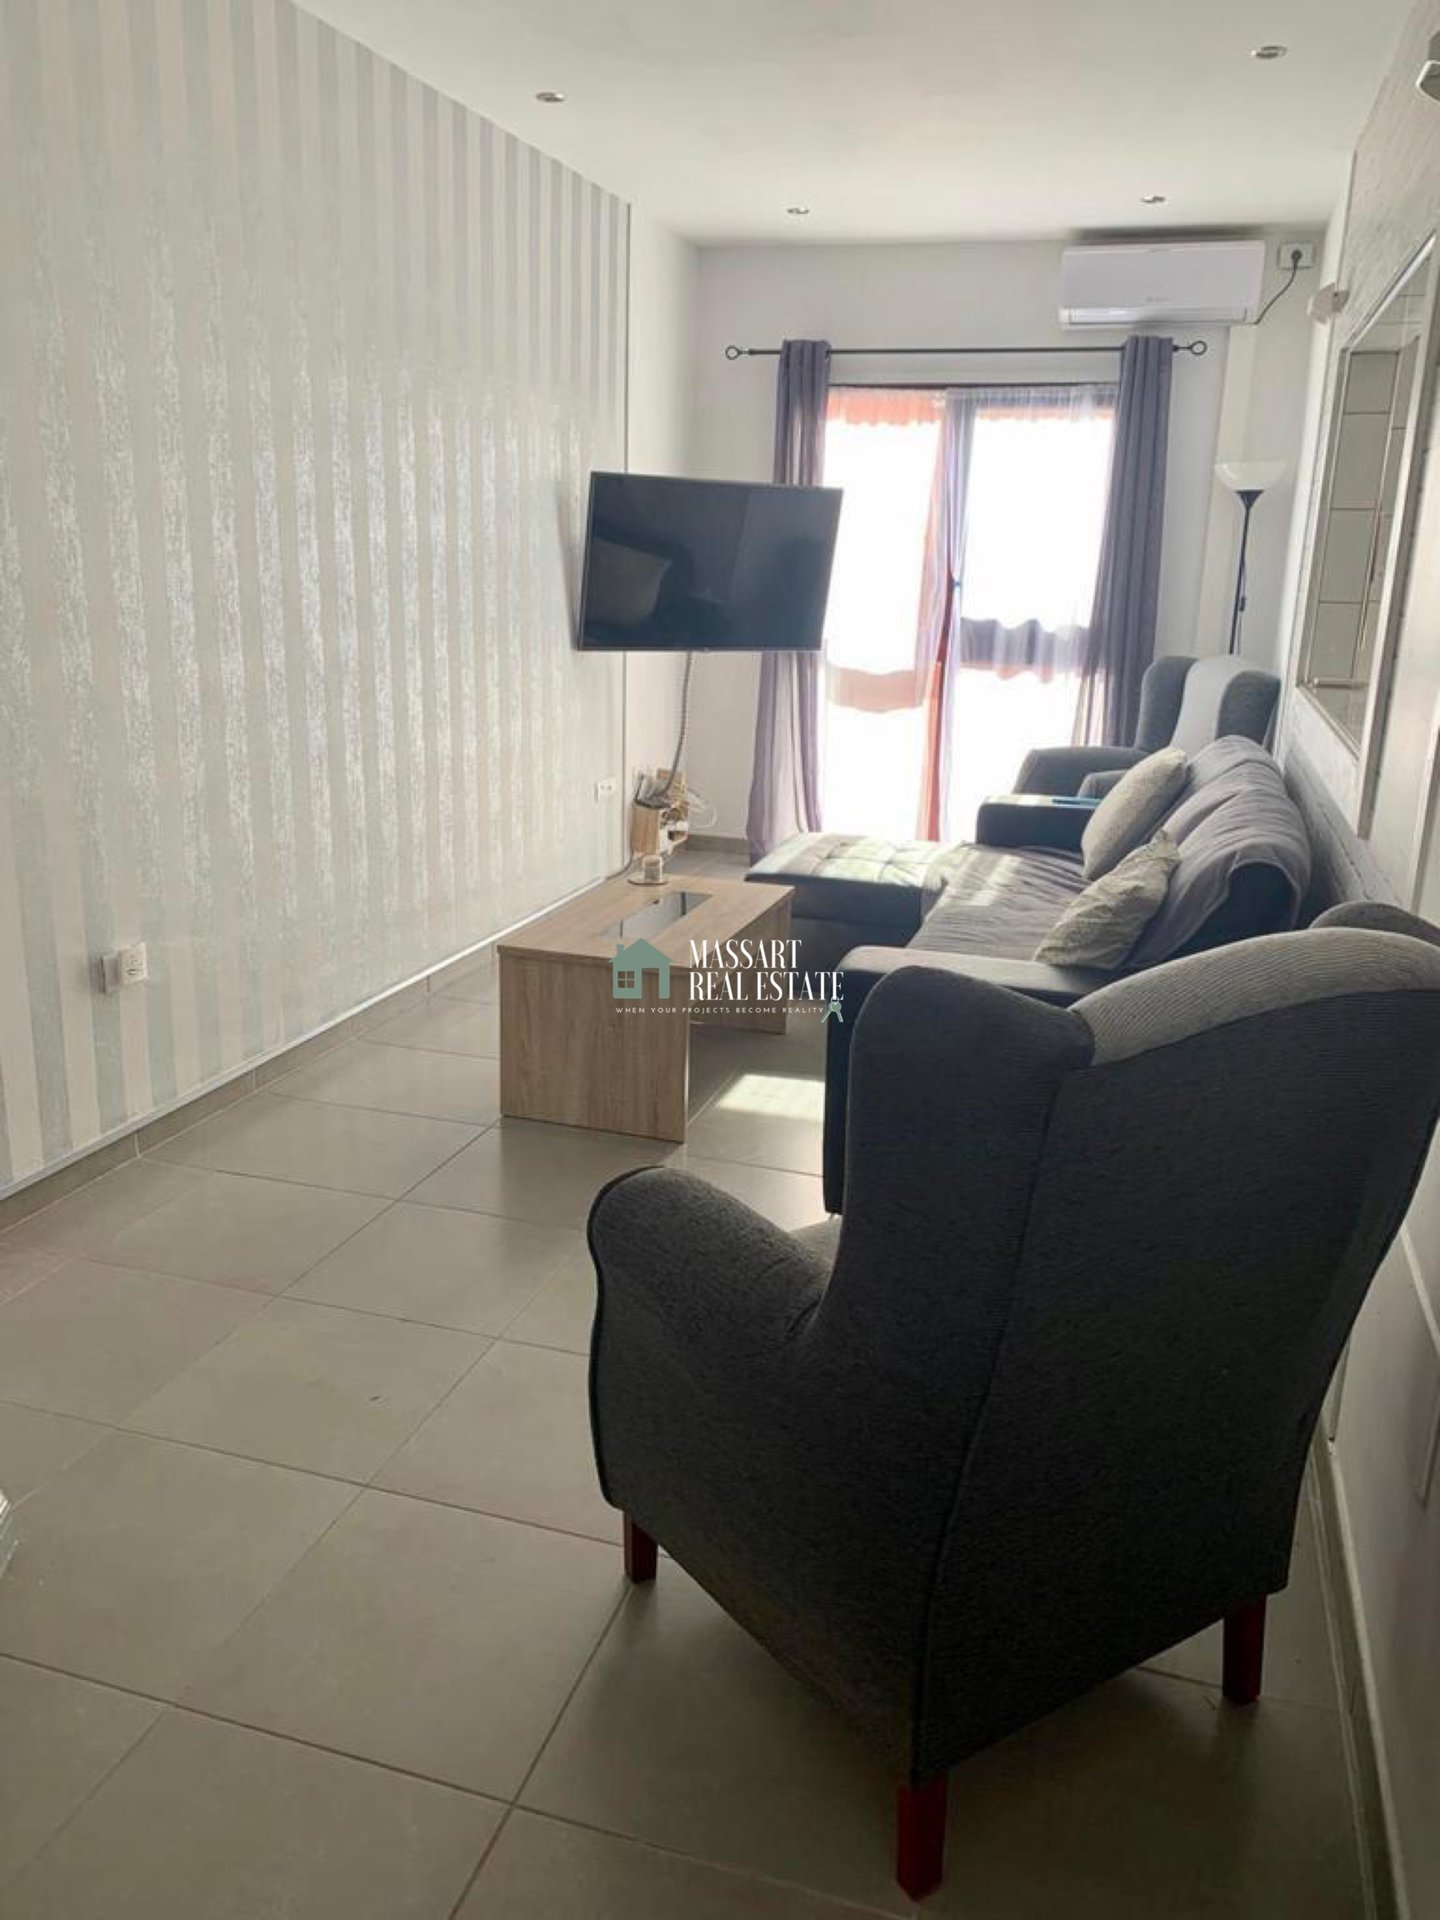 FOR SALE - Apartment of about 76 m2 recently renovated and fully furnished in a strategic area of Las Chafiras.